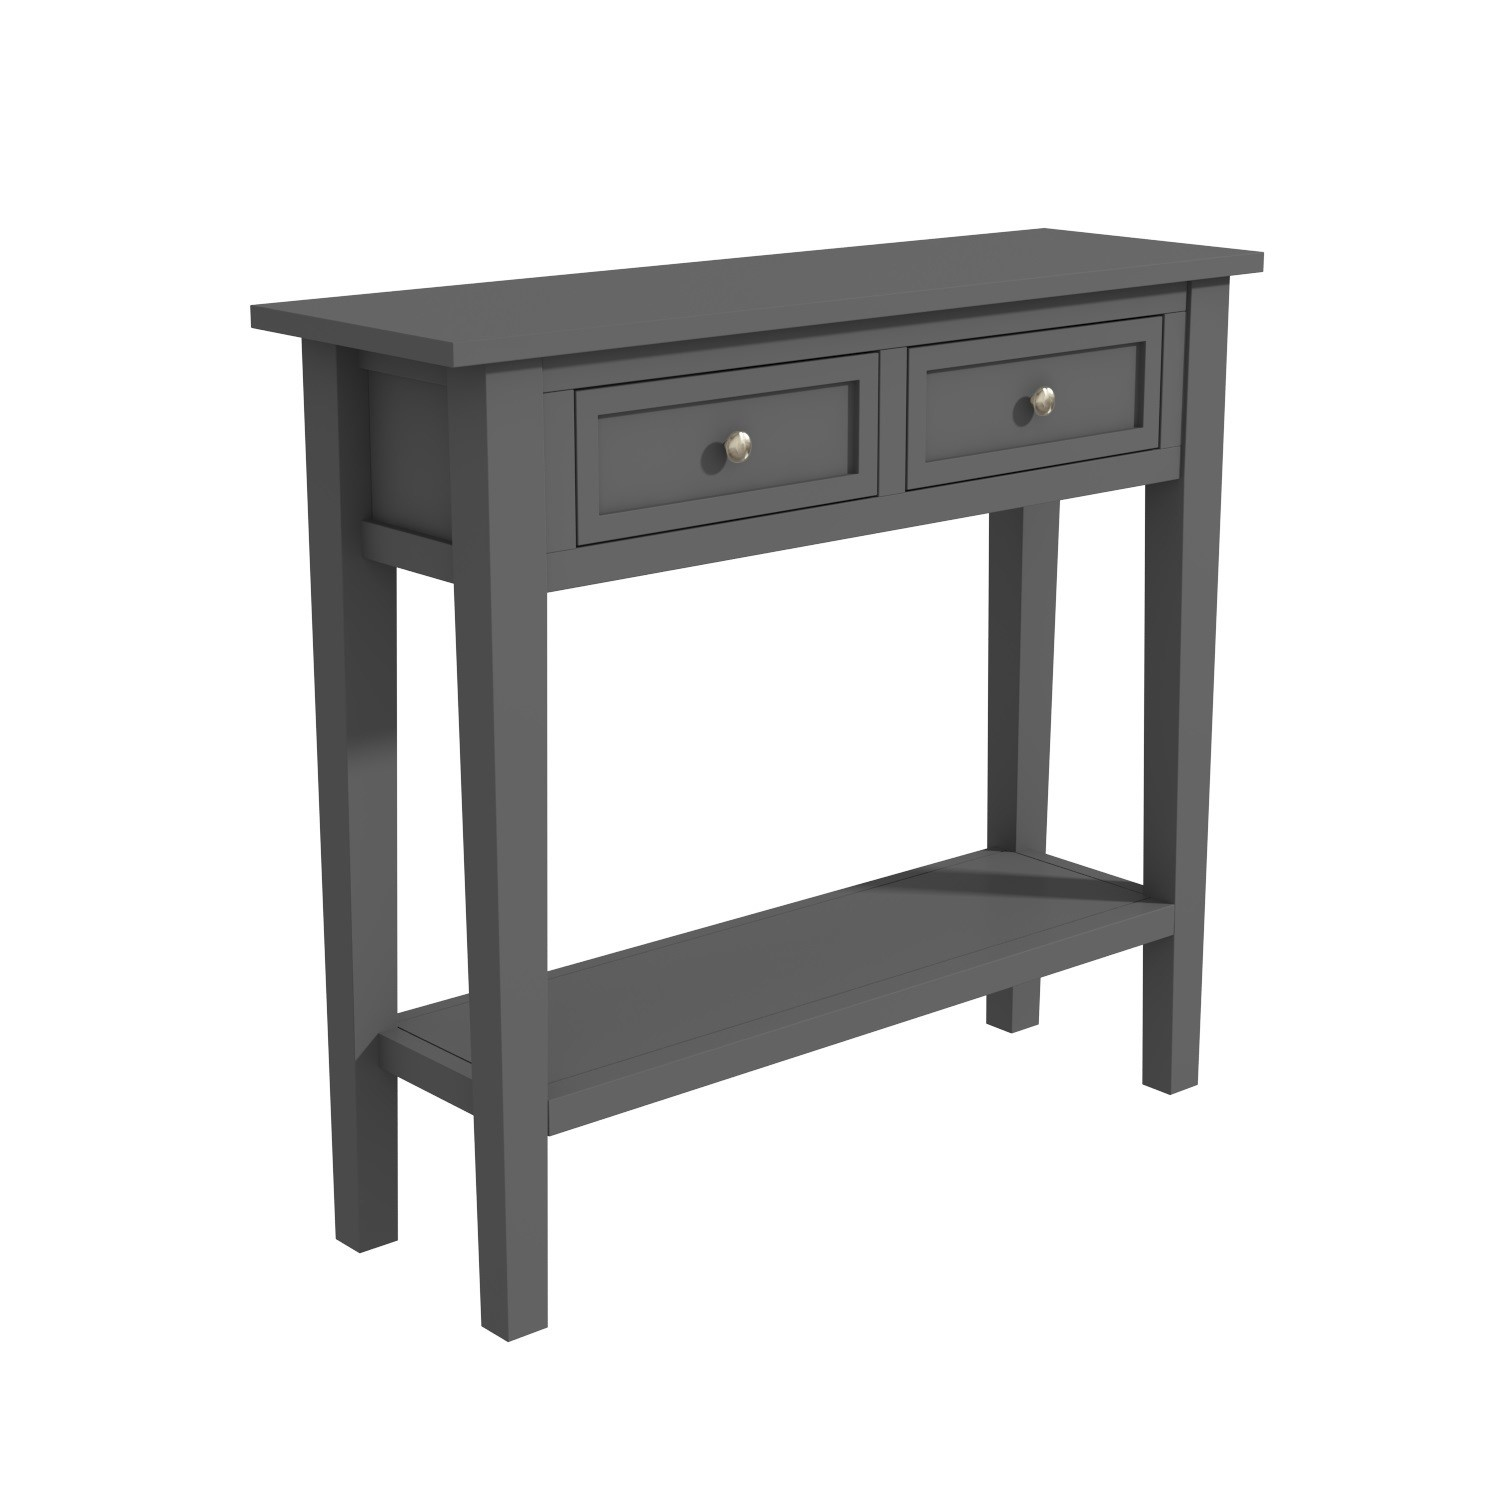 Picture of: Narrow Grey Console Table With Drawers Elms Furniture123